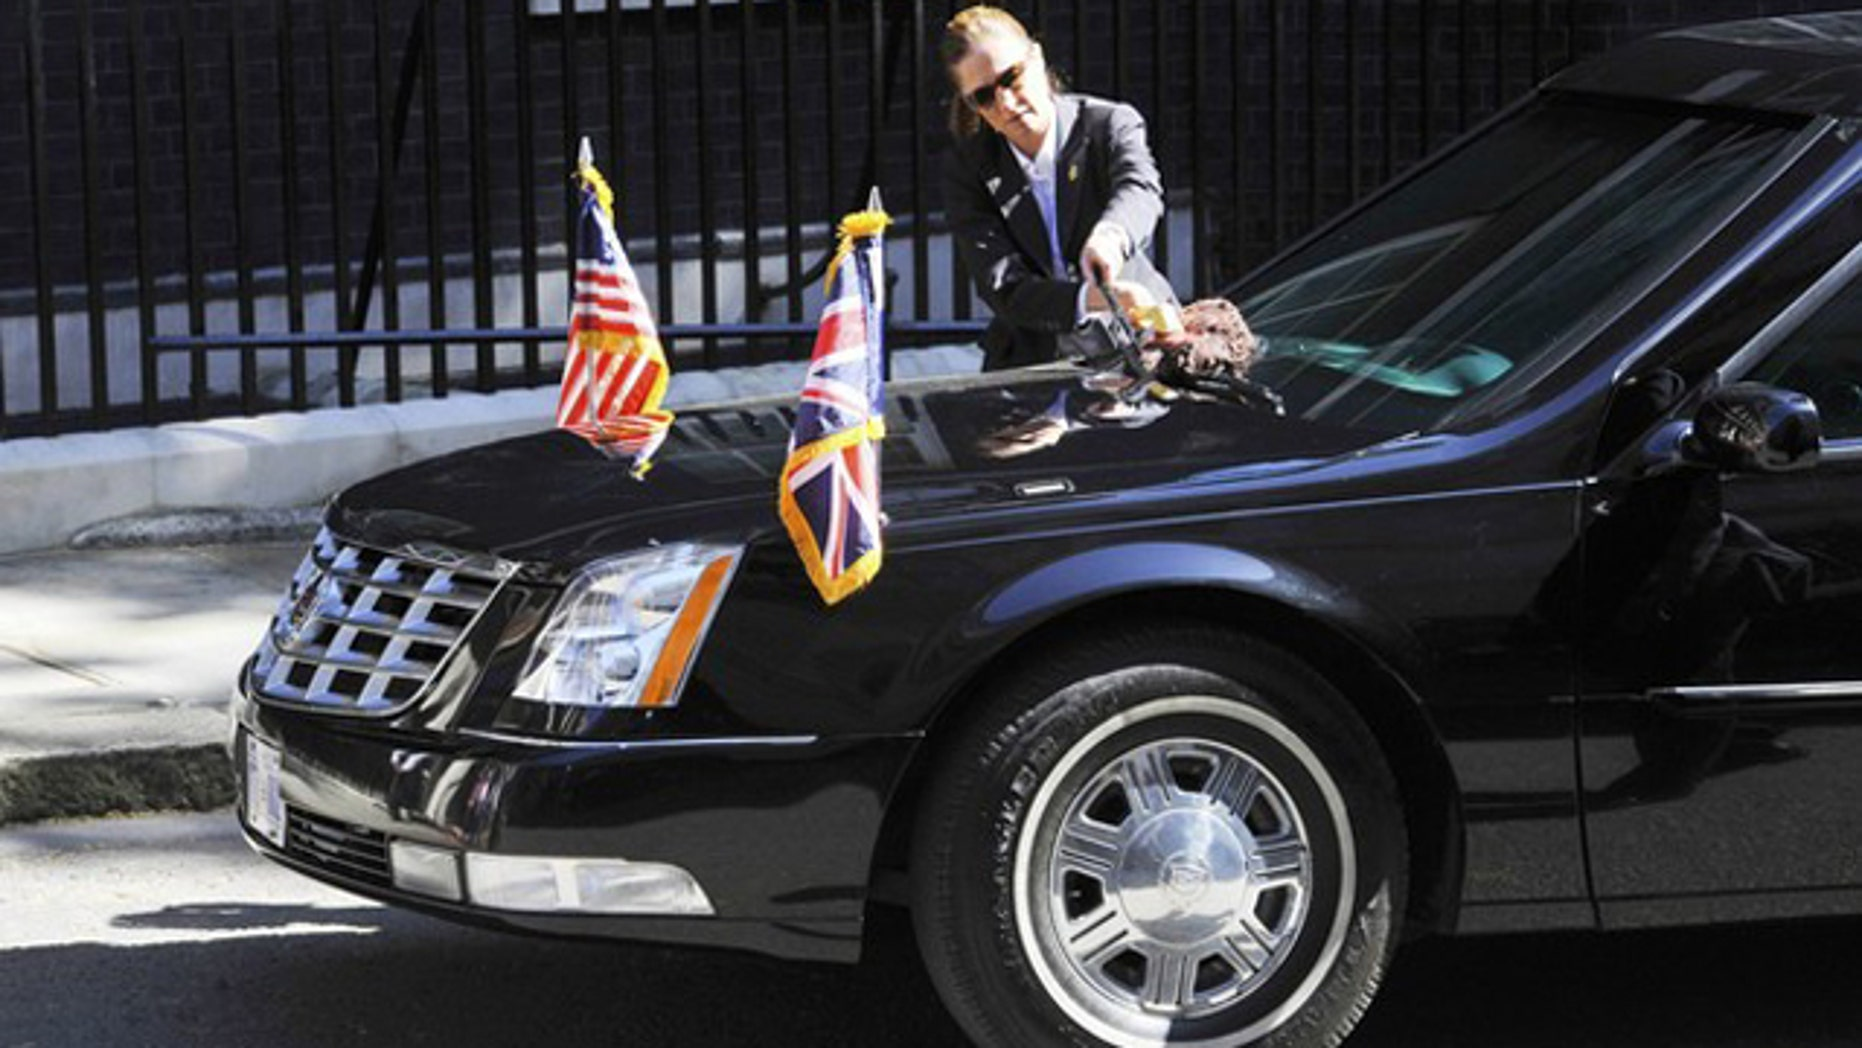 The armoured limousine of U.S. President Barack Obama is cleaned outside the 10 Downing Street residence of Britain's Prime Minister David Cameron in London May 25, 2011.